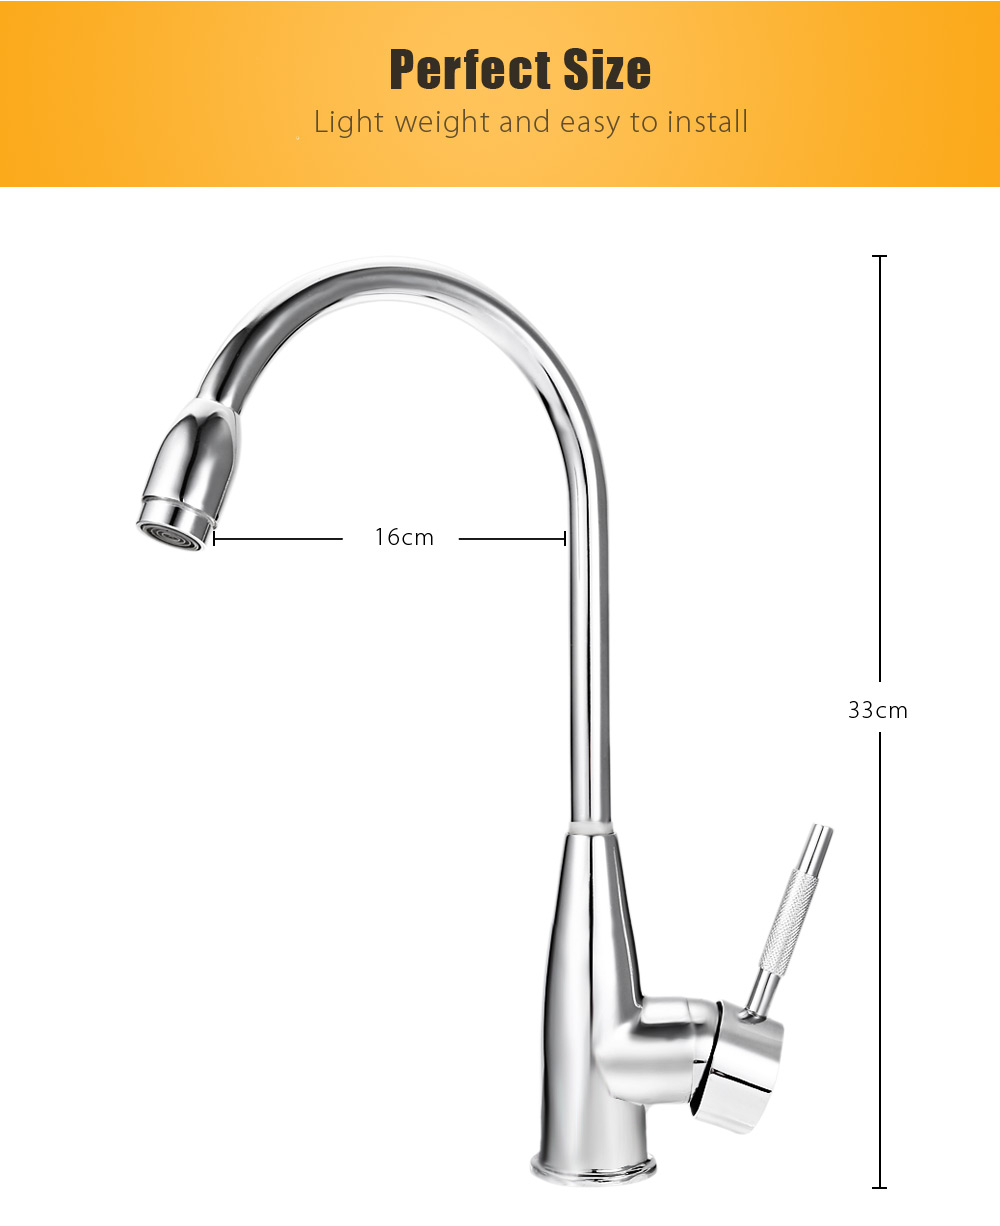 360 Degree Single Hole Double Control Kitchen Tap Faucet